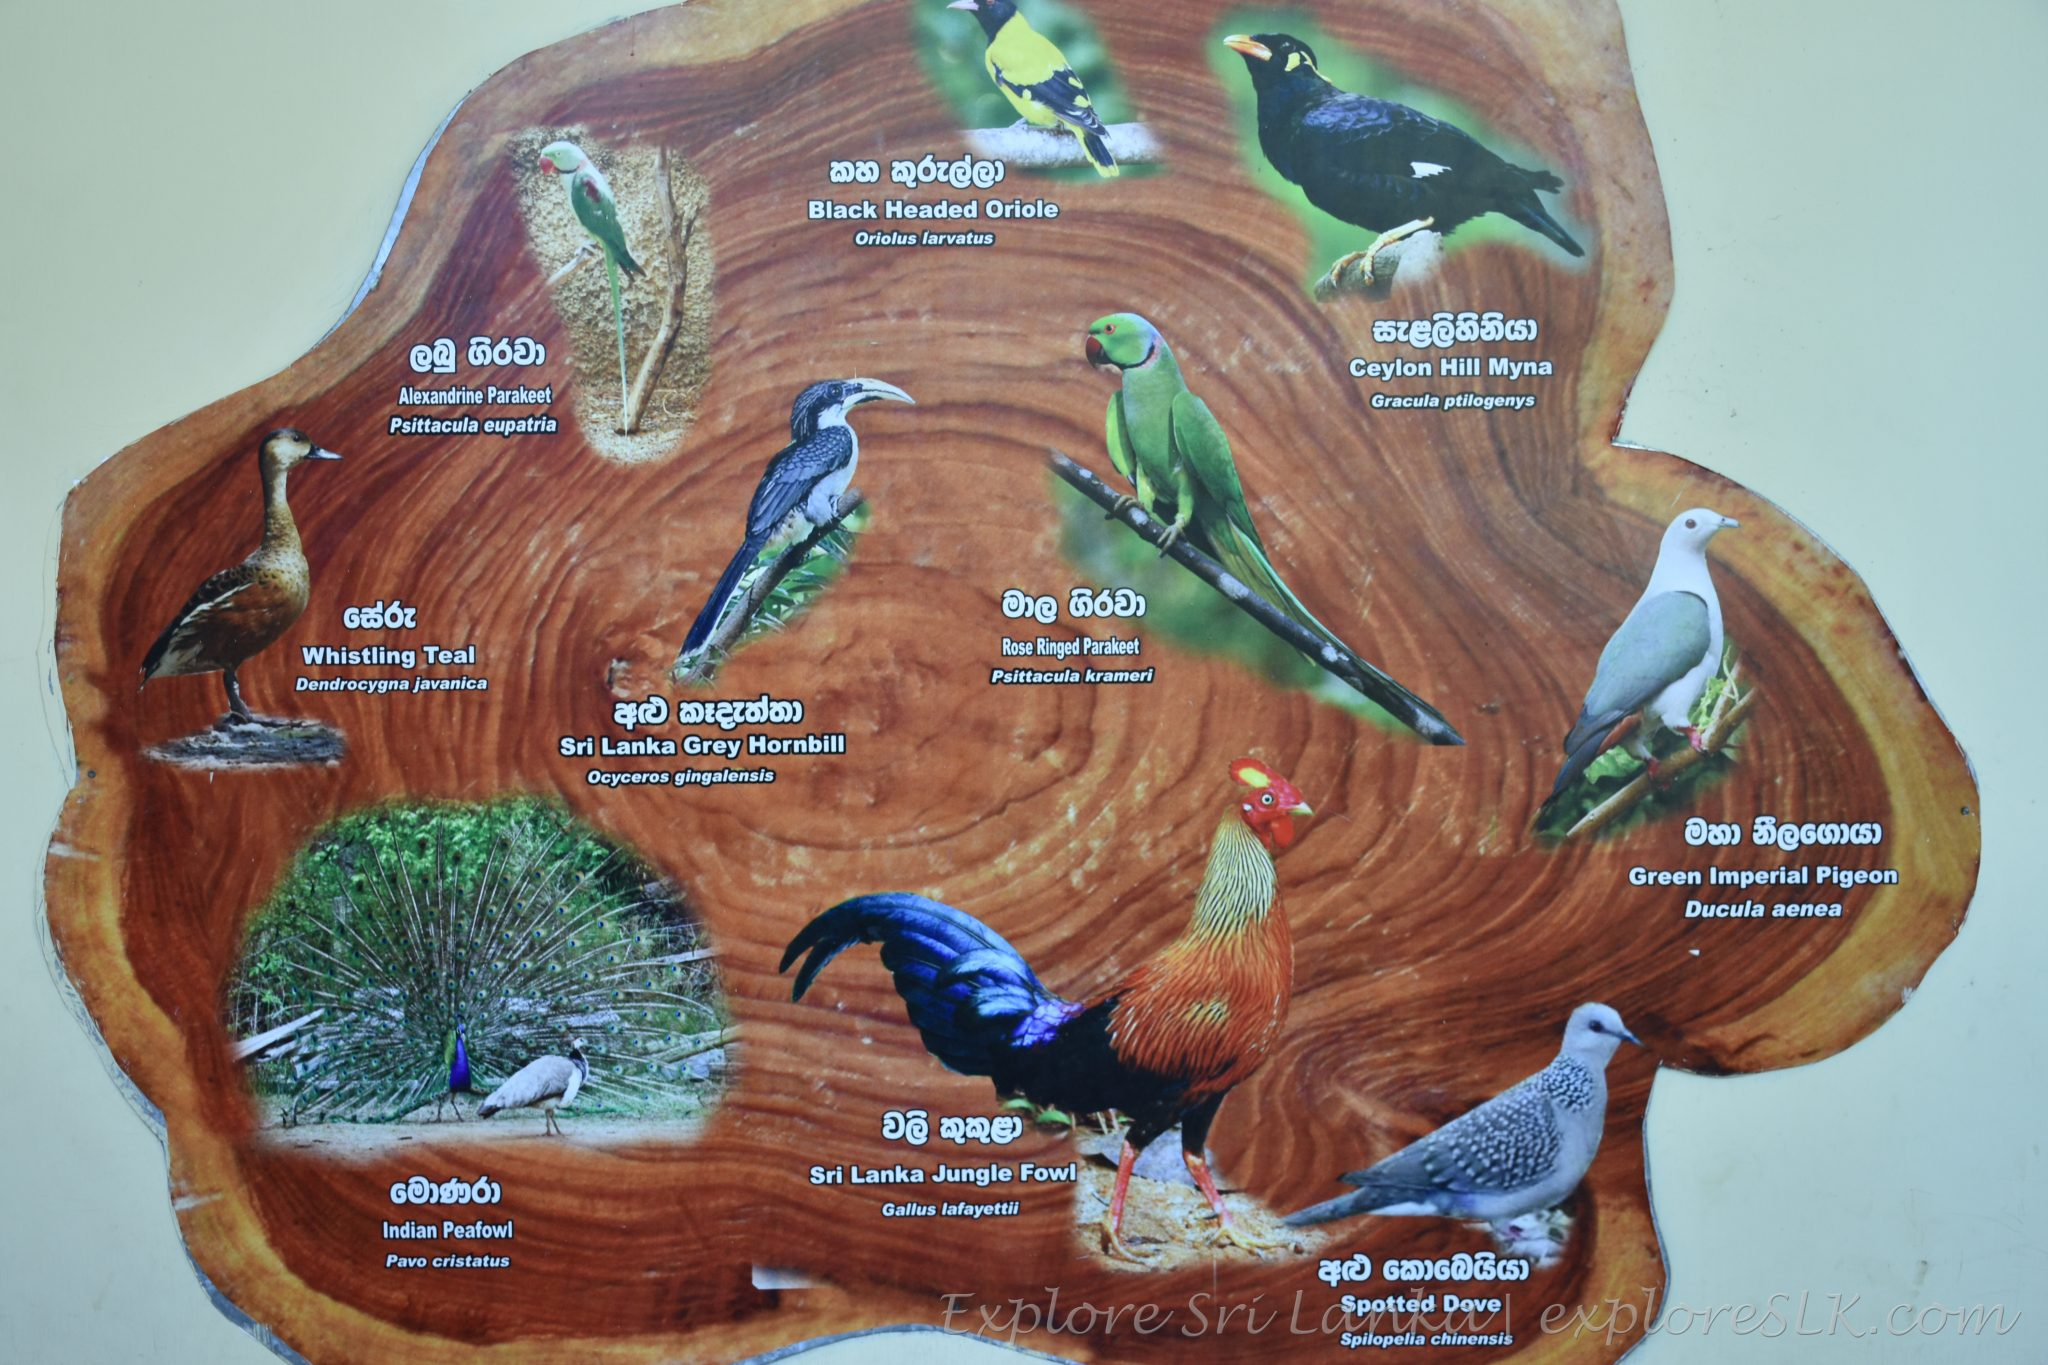 List of birds at Dehiwala zoo